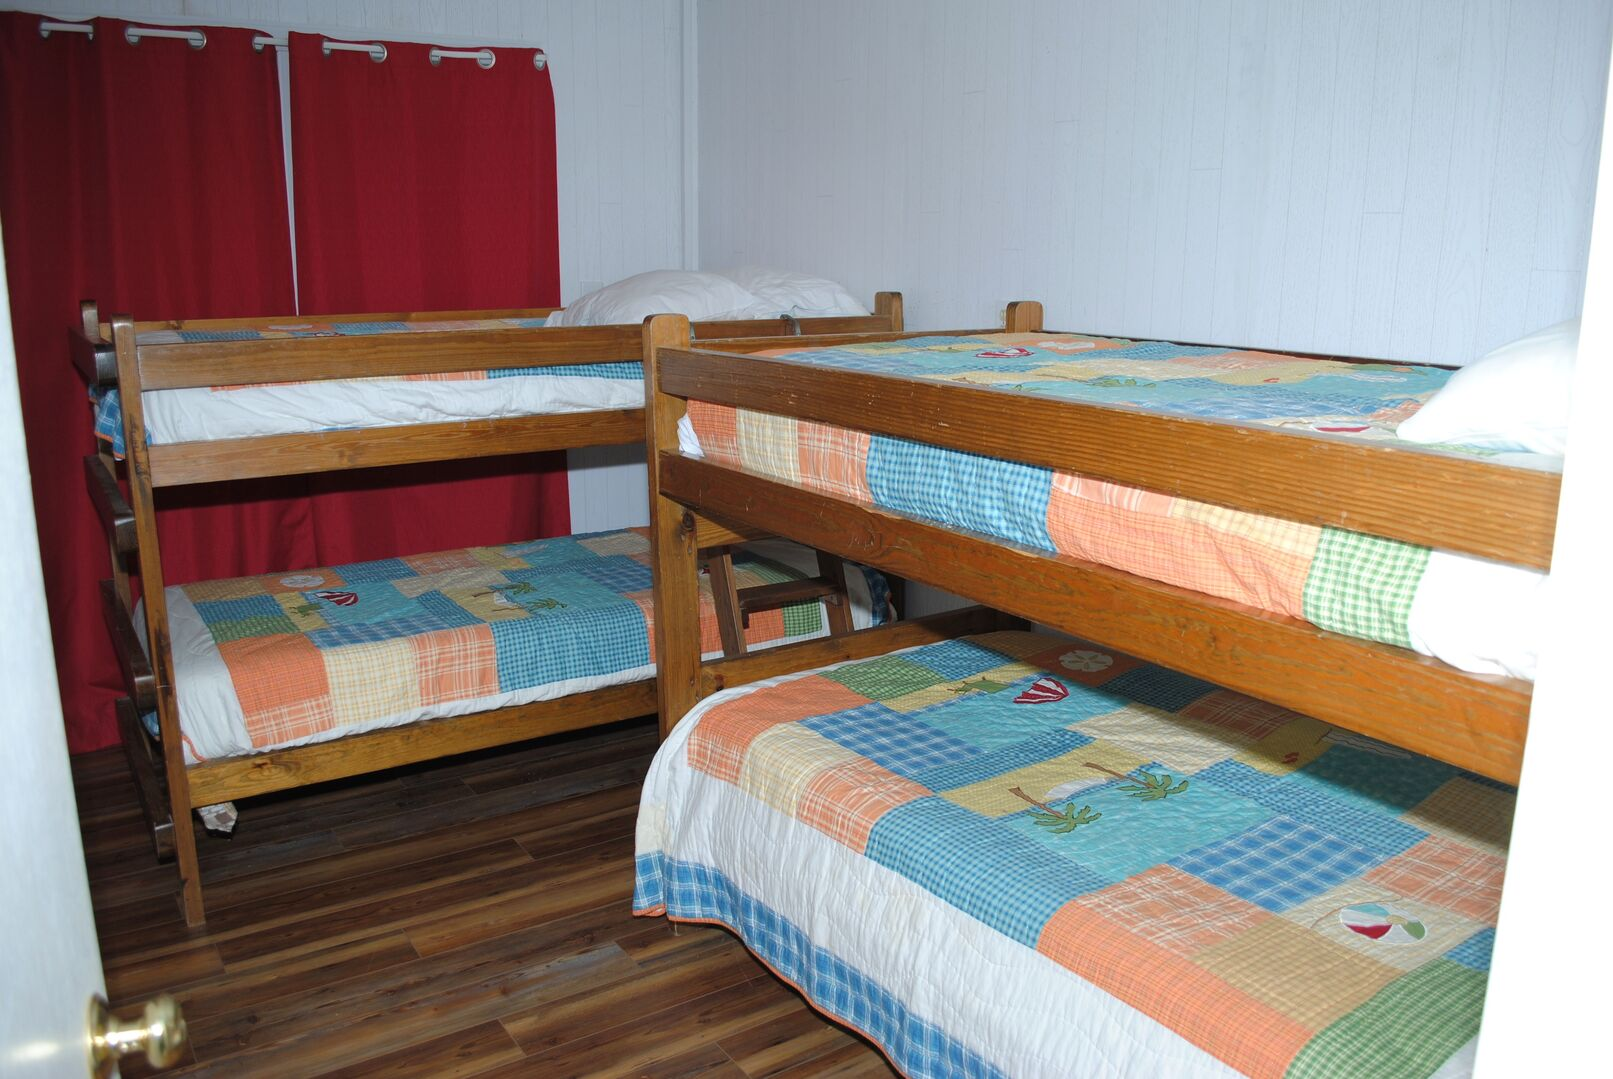 2 Sets of Bunk Beds - Ground Level